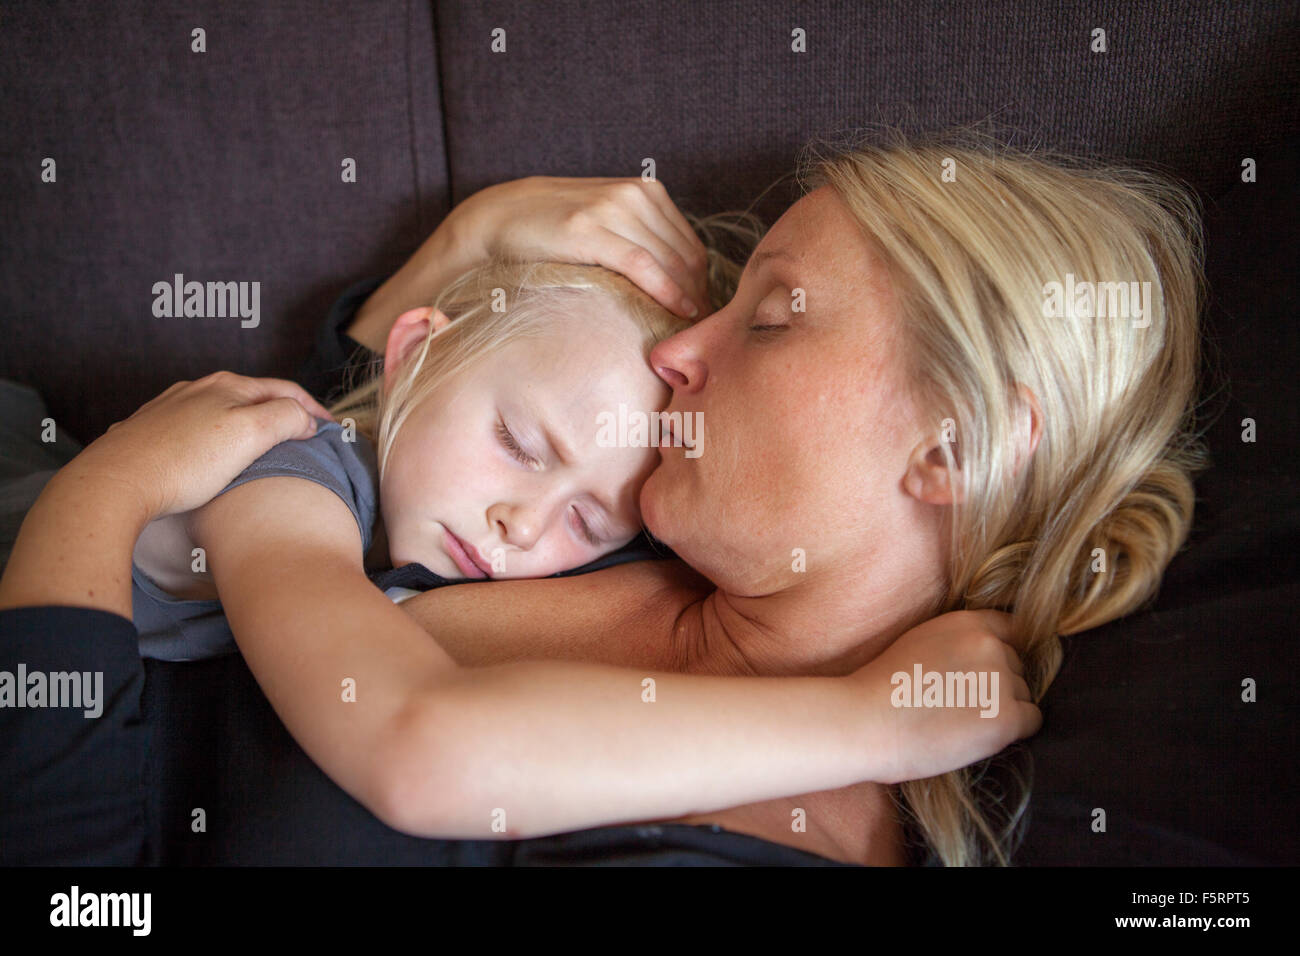 Sweden, Vastergotland, Lerum, Mother and daughter (6-7) embracing - Stock Image